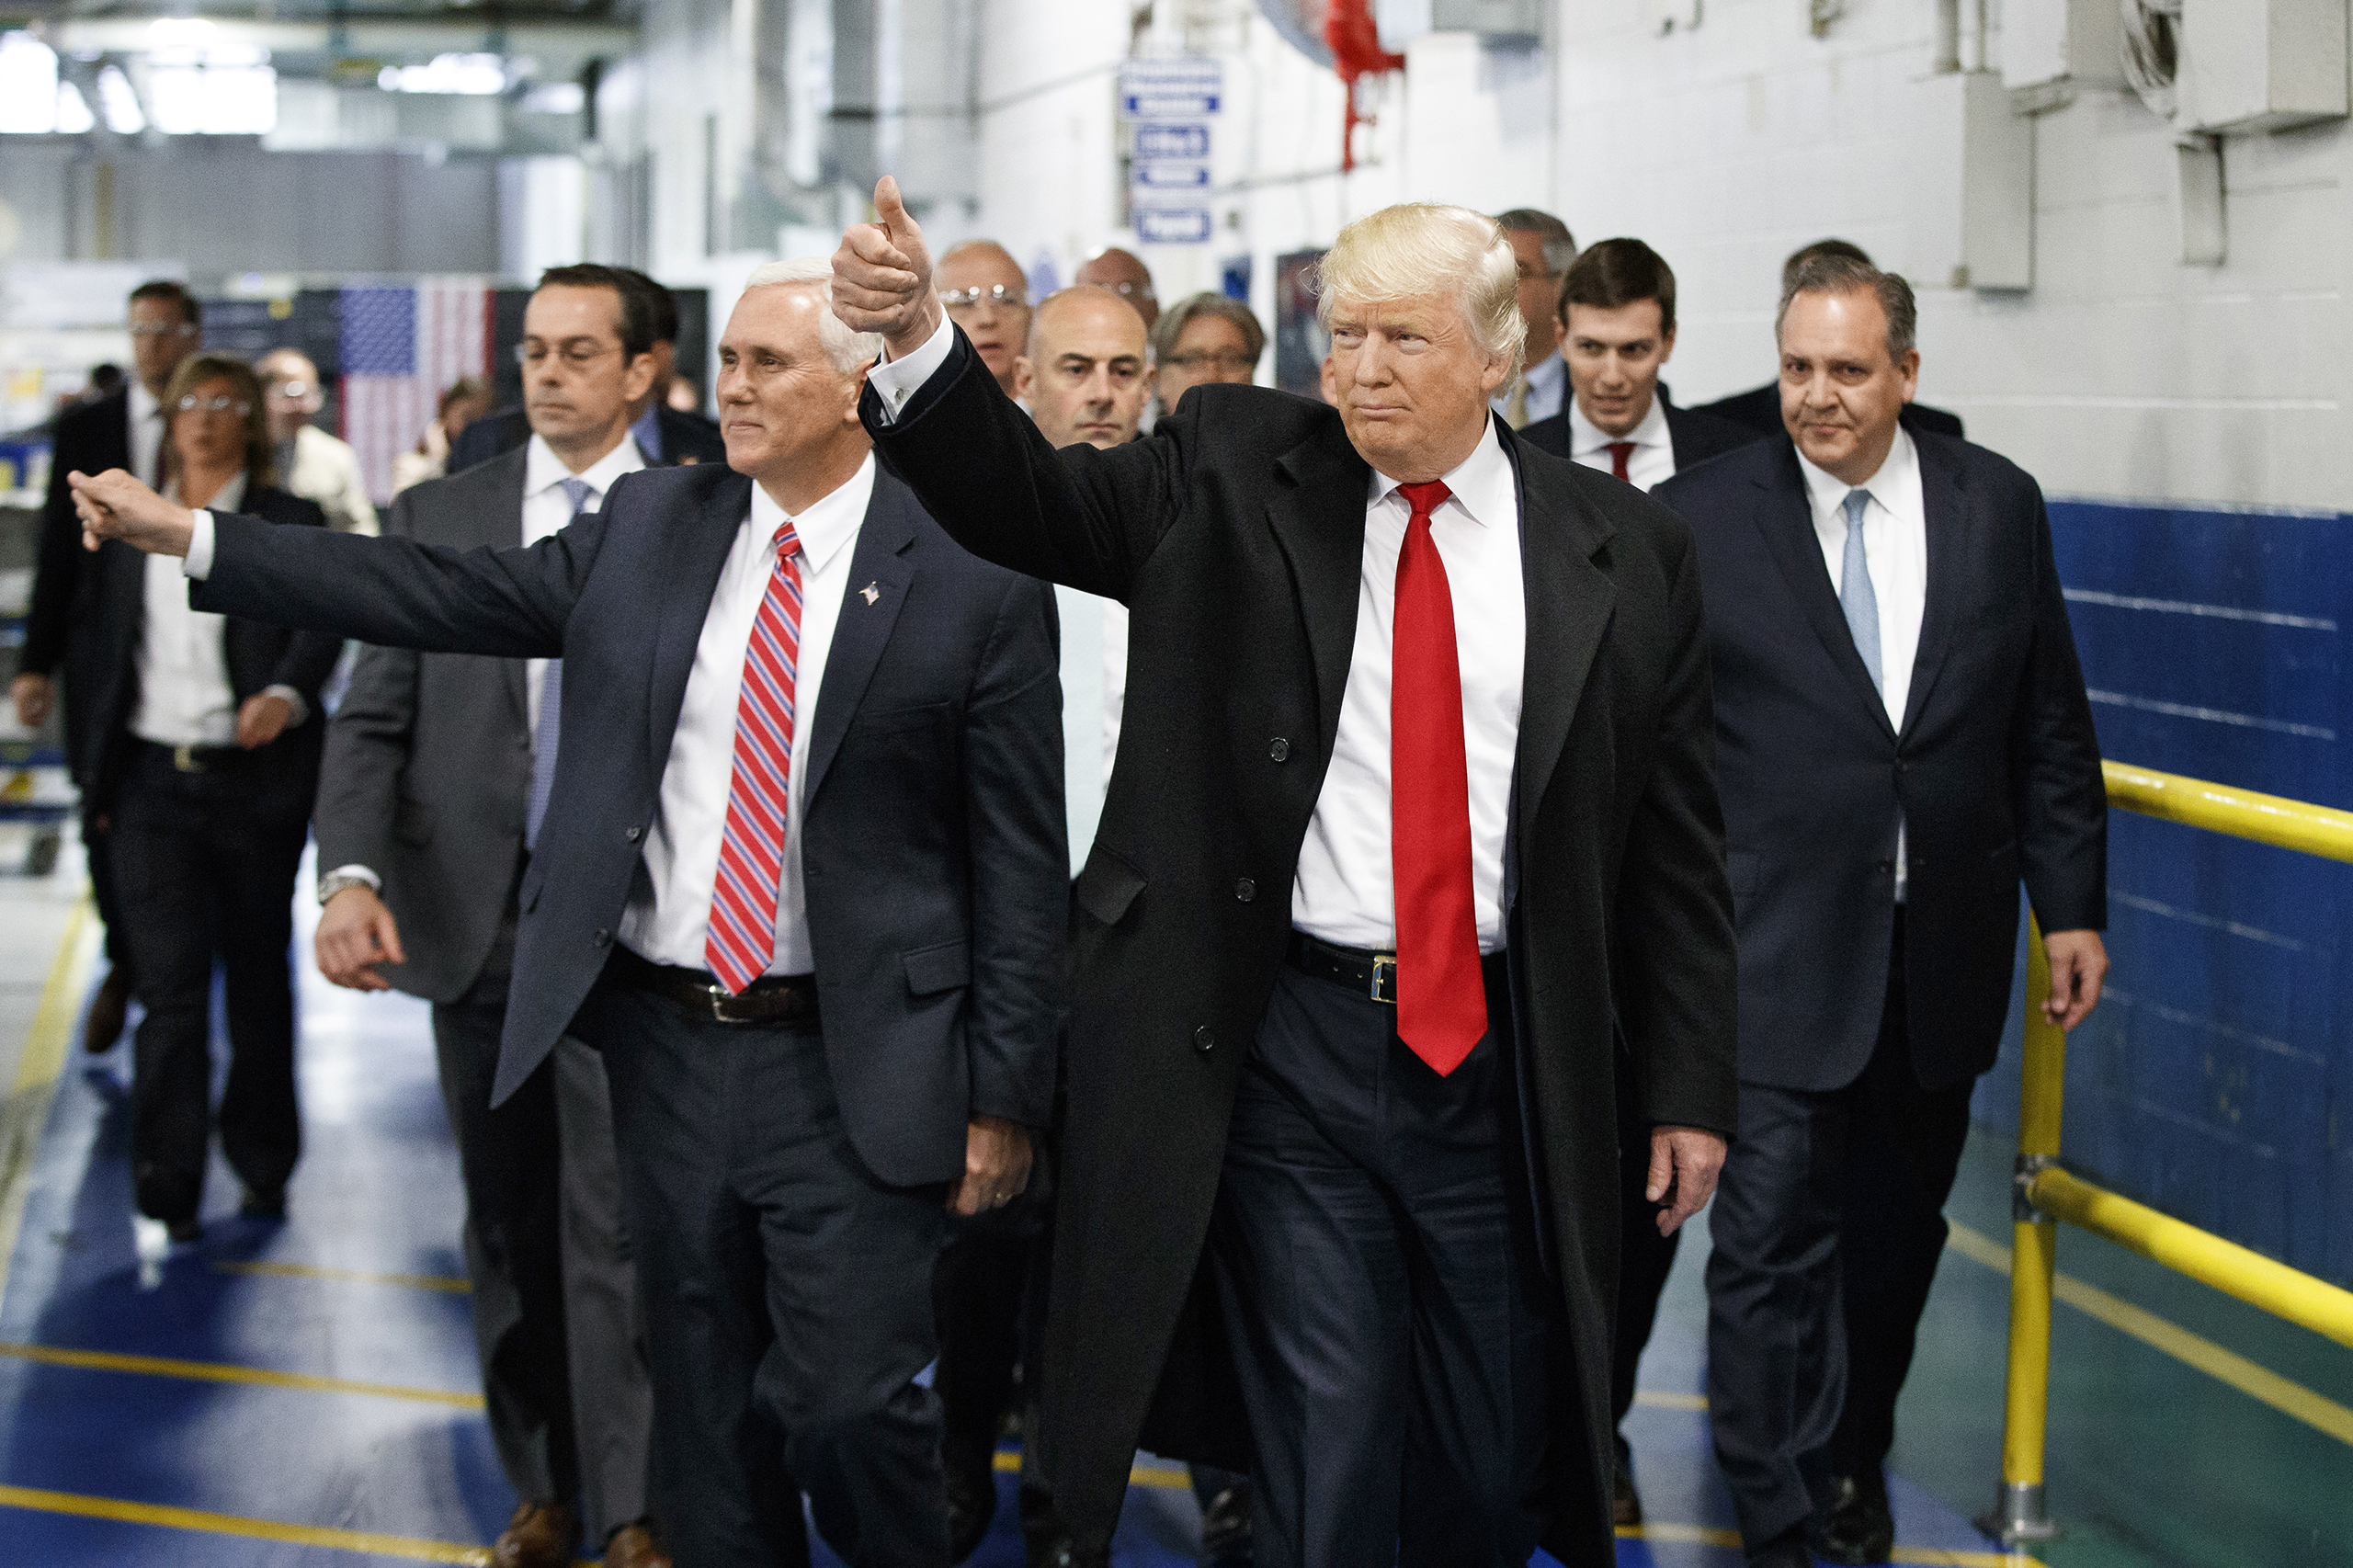 President-elect Trump and Vice President-elect Mike Pence at a Carrier plant in December.